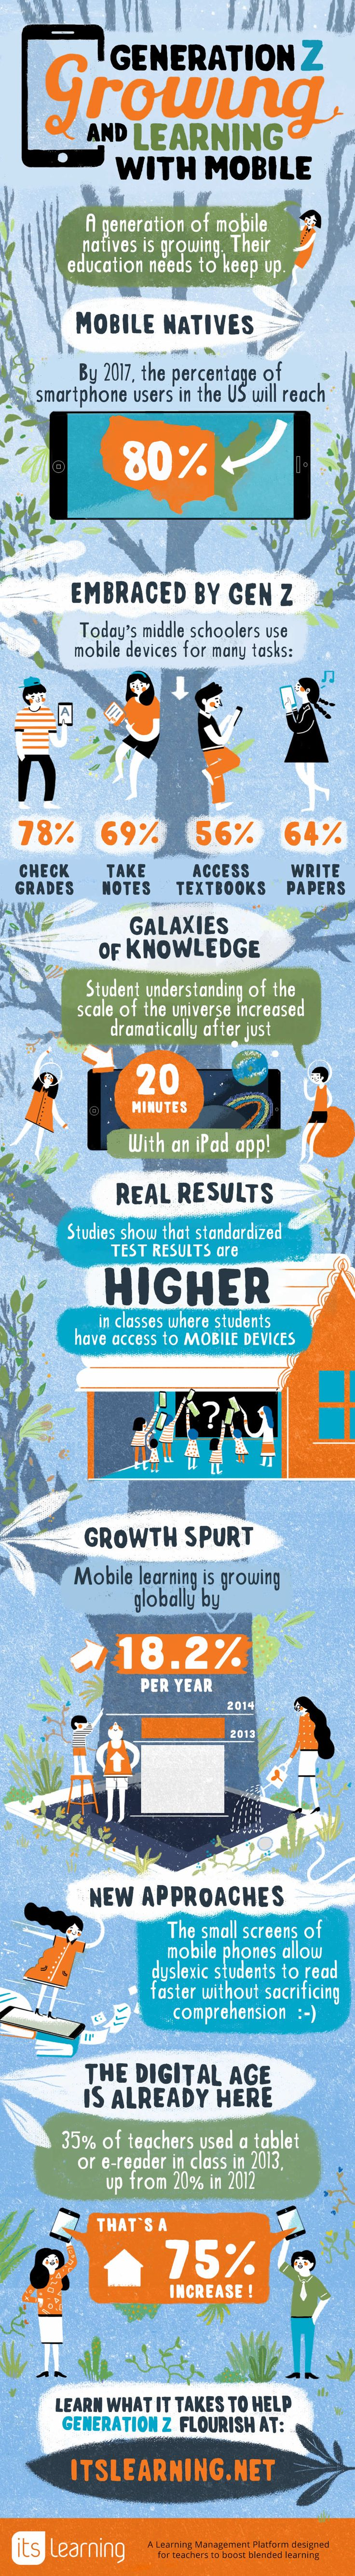 Generation Z: Growing and #Learning with Mobile #mLearning #MobileLearning